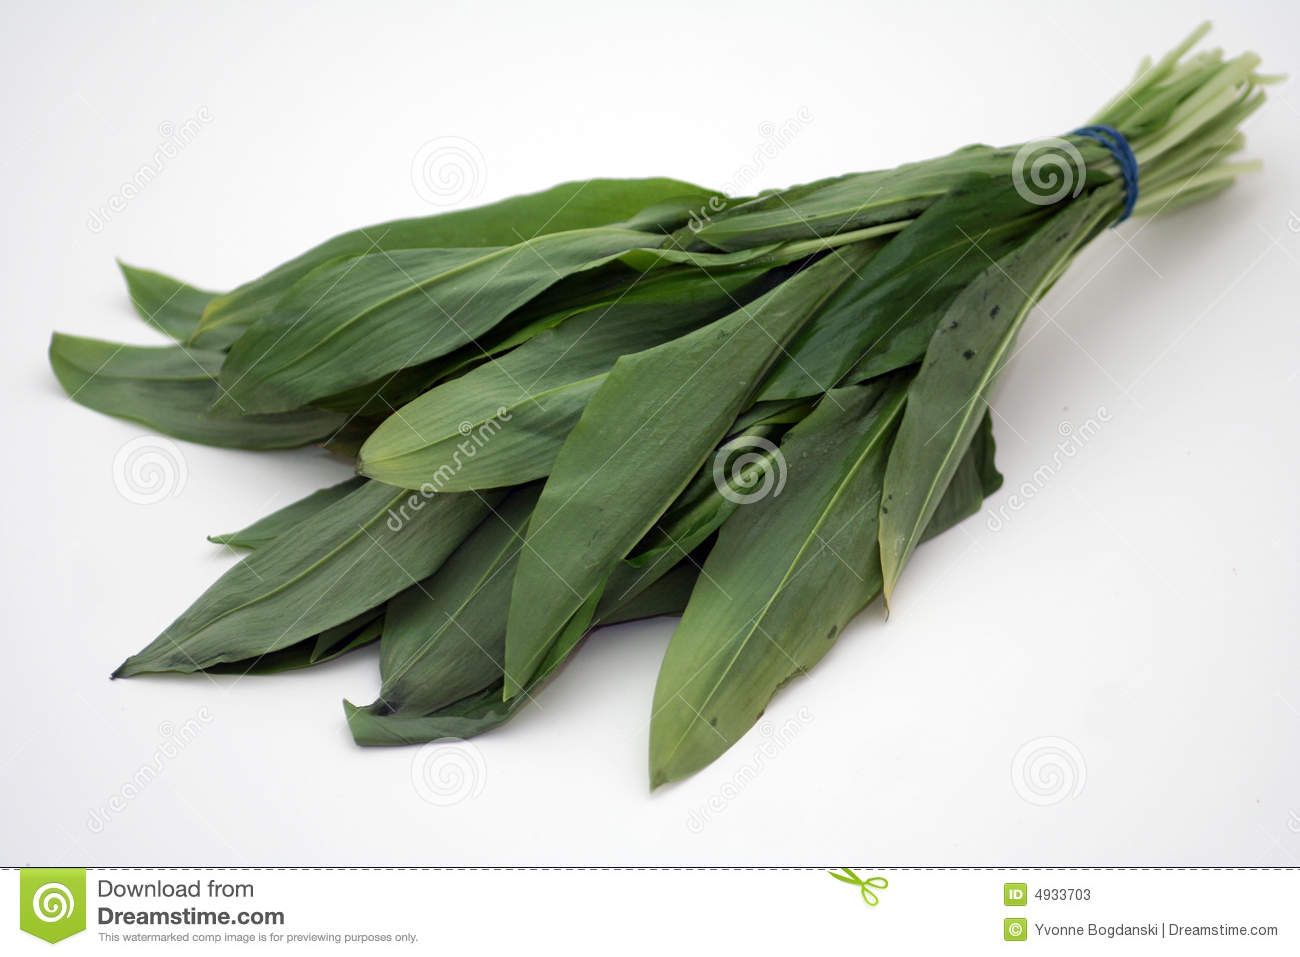 Bears Garlic Stock Photos.